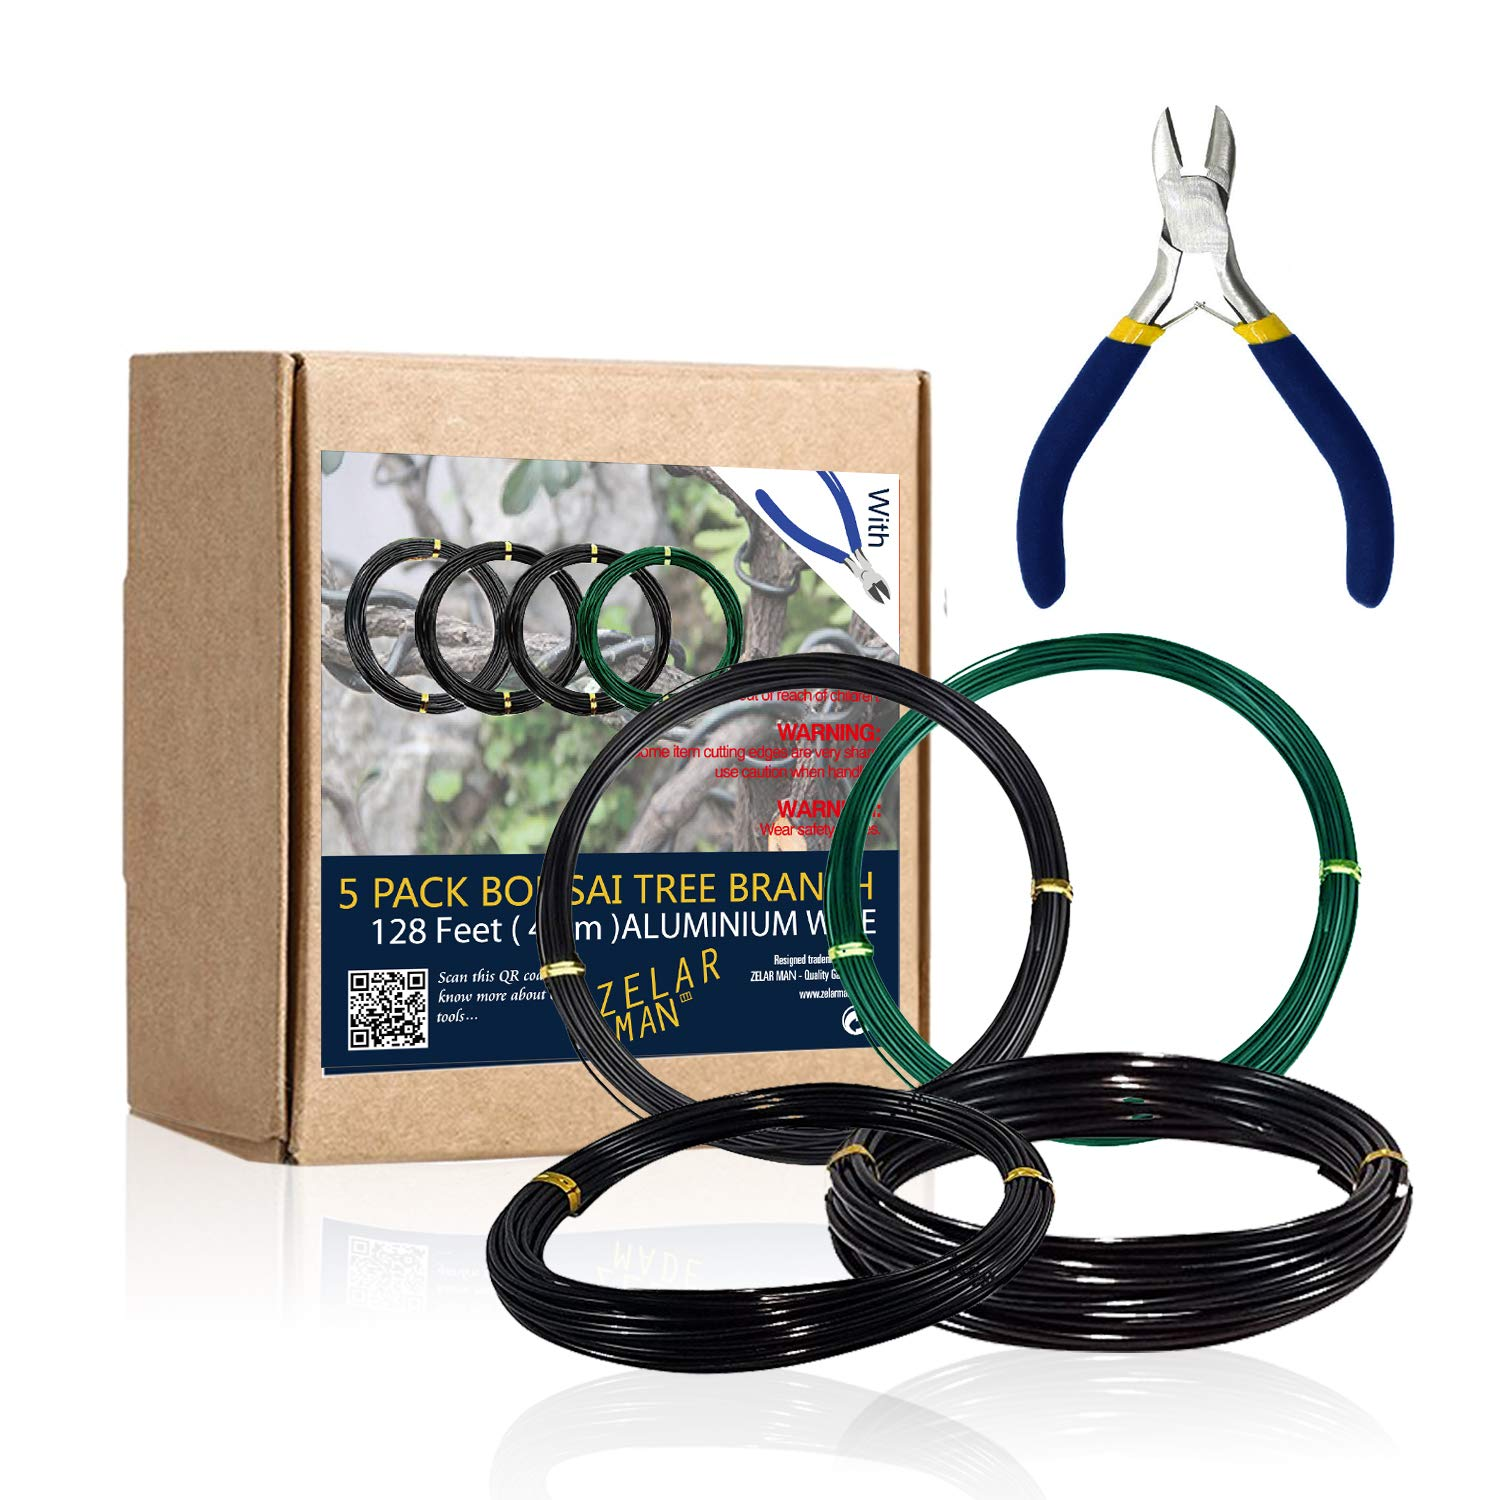 Bonsai Training Wire Set of 4 - Total 128 Feet(32 Feet Each Size) 3 Size - 1.0MM, 1.5MM, 2.0MM - Corrosion and Rust Resistant by ZELARMAN